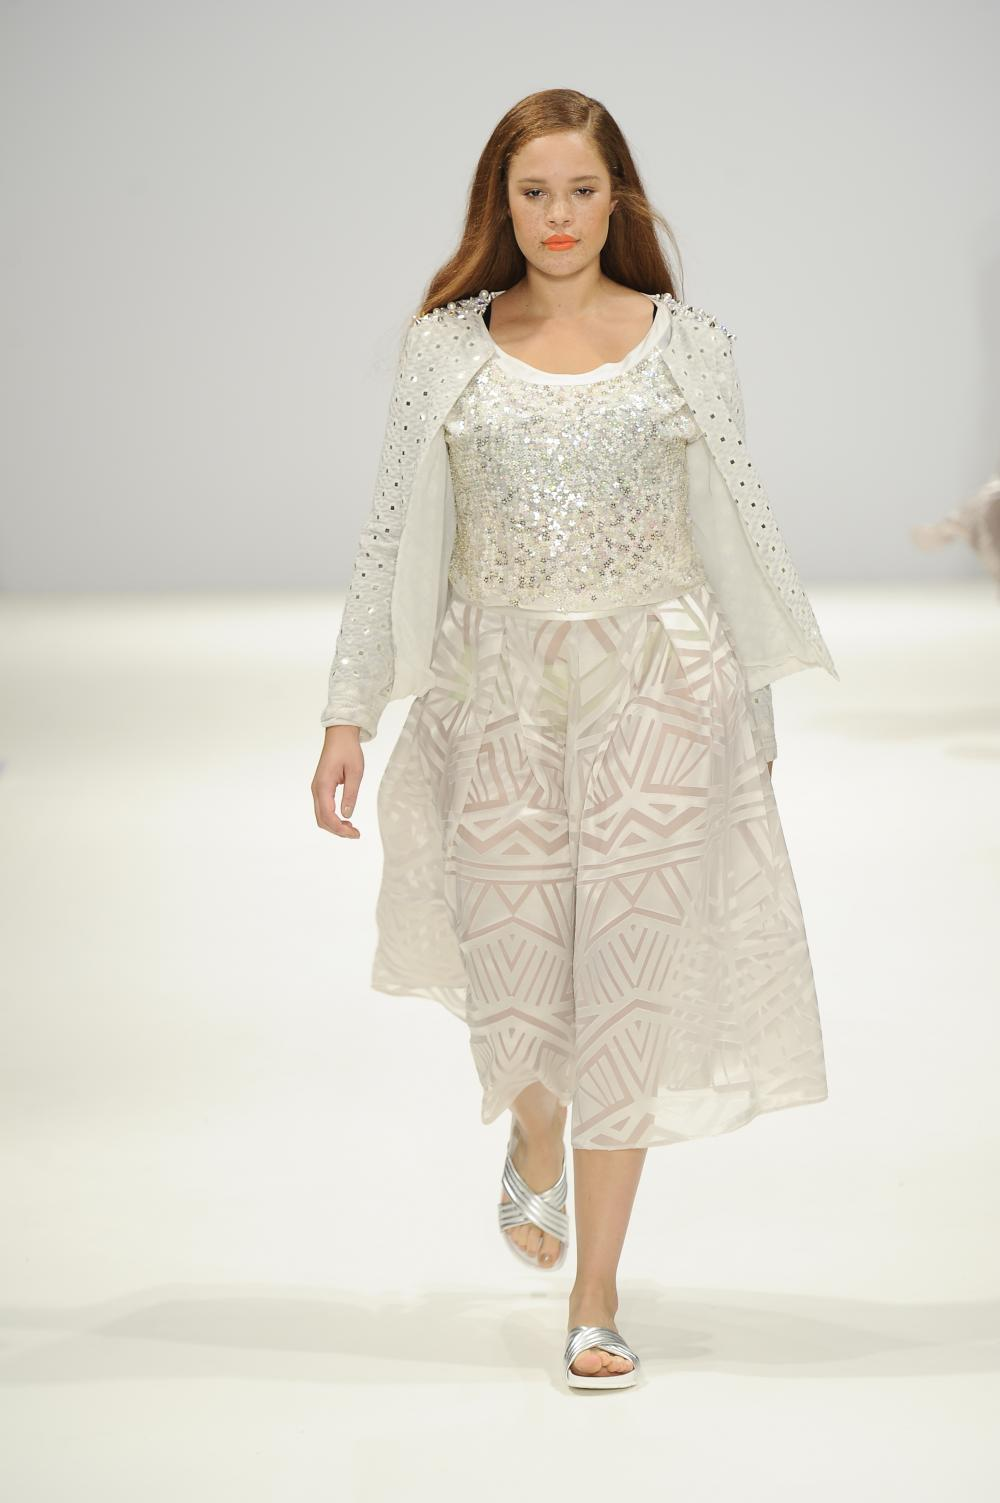 Plus Size Fashion Week UK Collective Evans